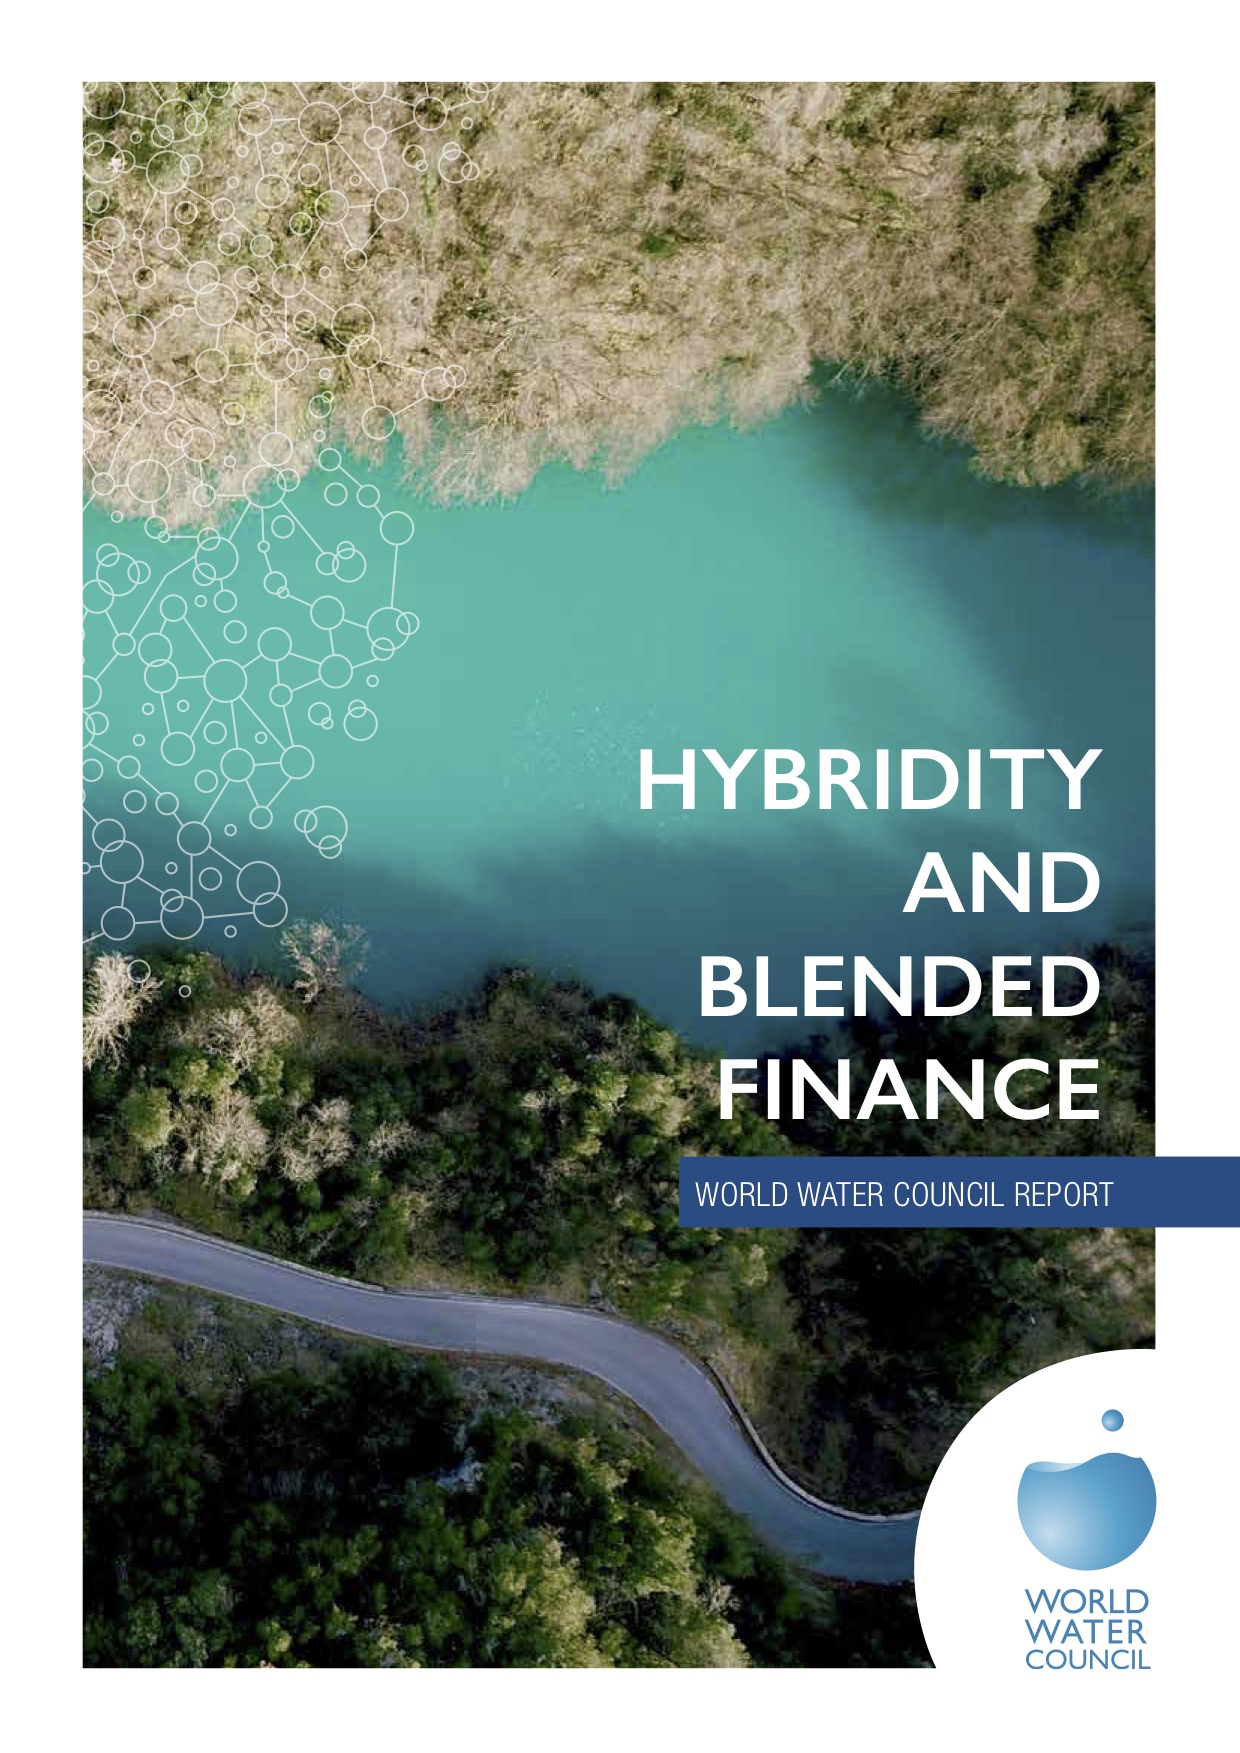 Hybridity and Blended Finance